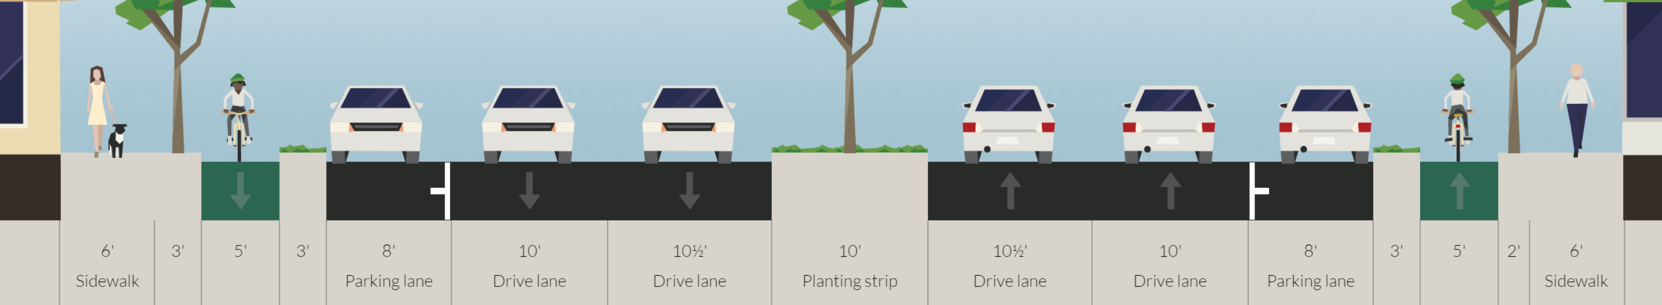 Protected Lane Proposal